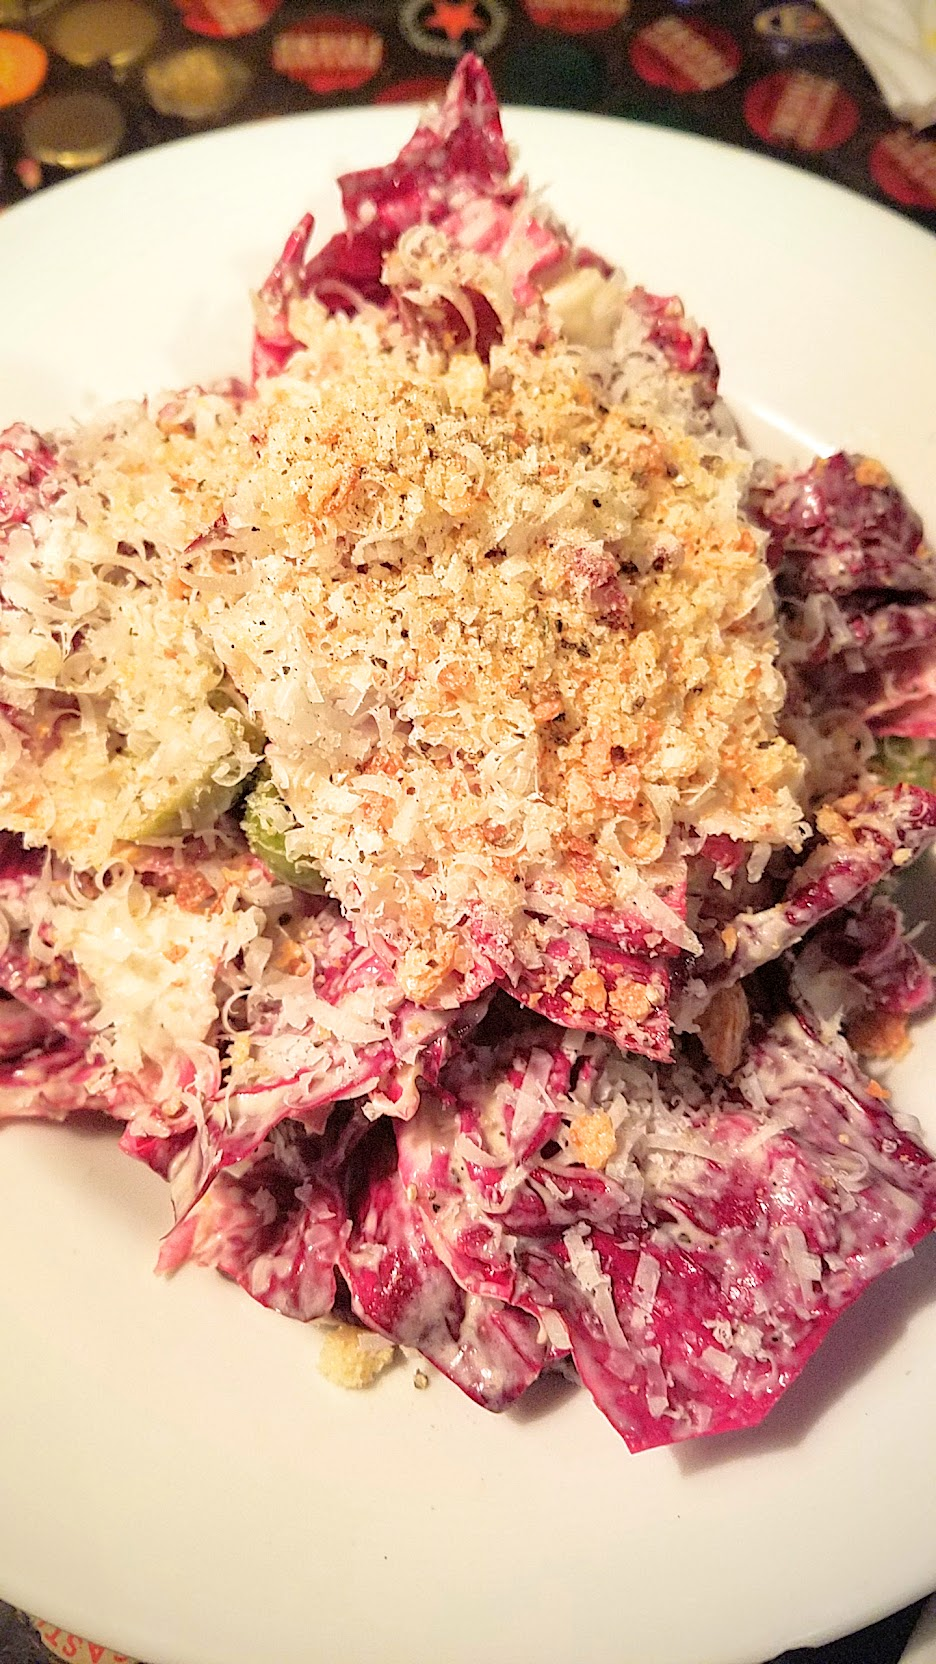 Example Food at Saraveza Radicchio salad with sherry dressing, Parmesan, olive, and breadcrumb